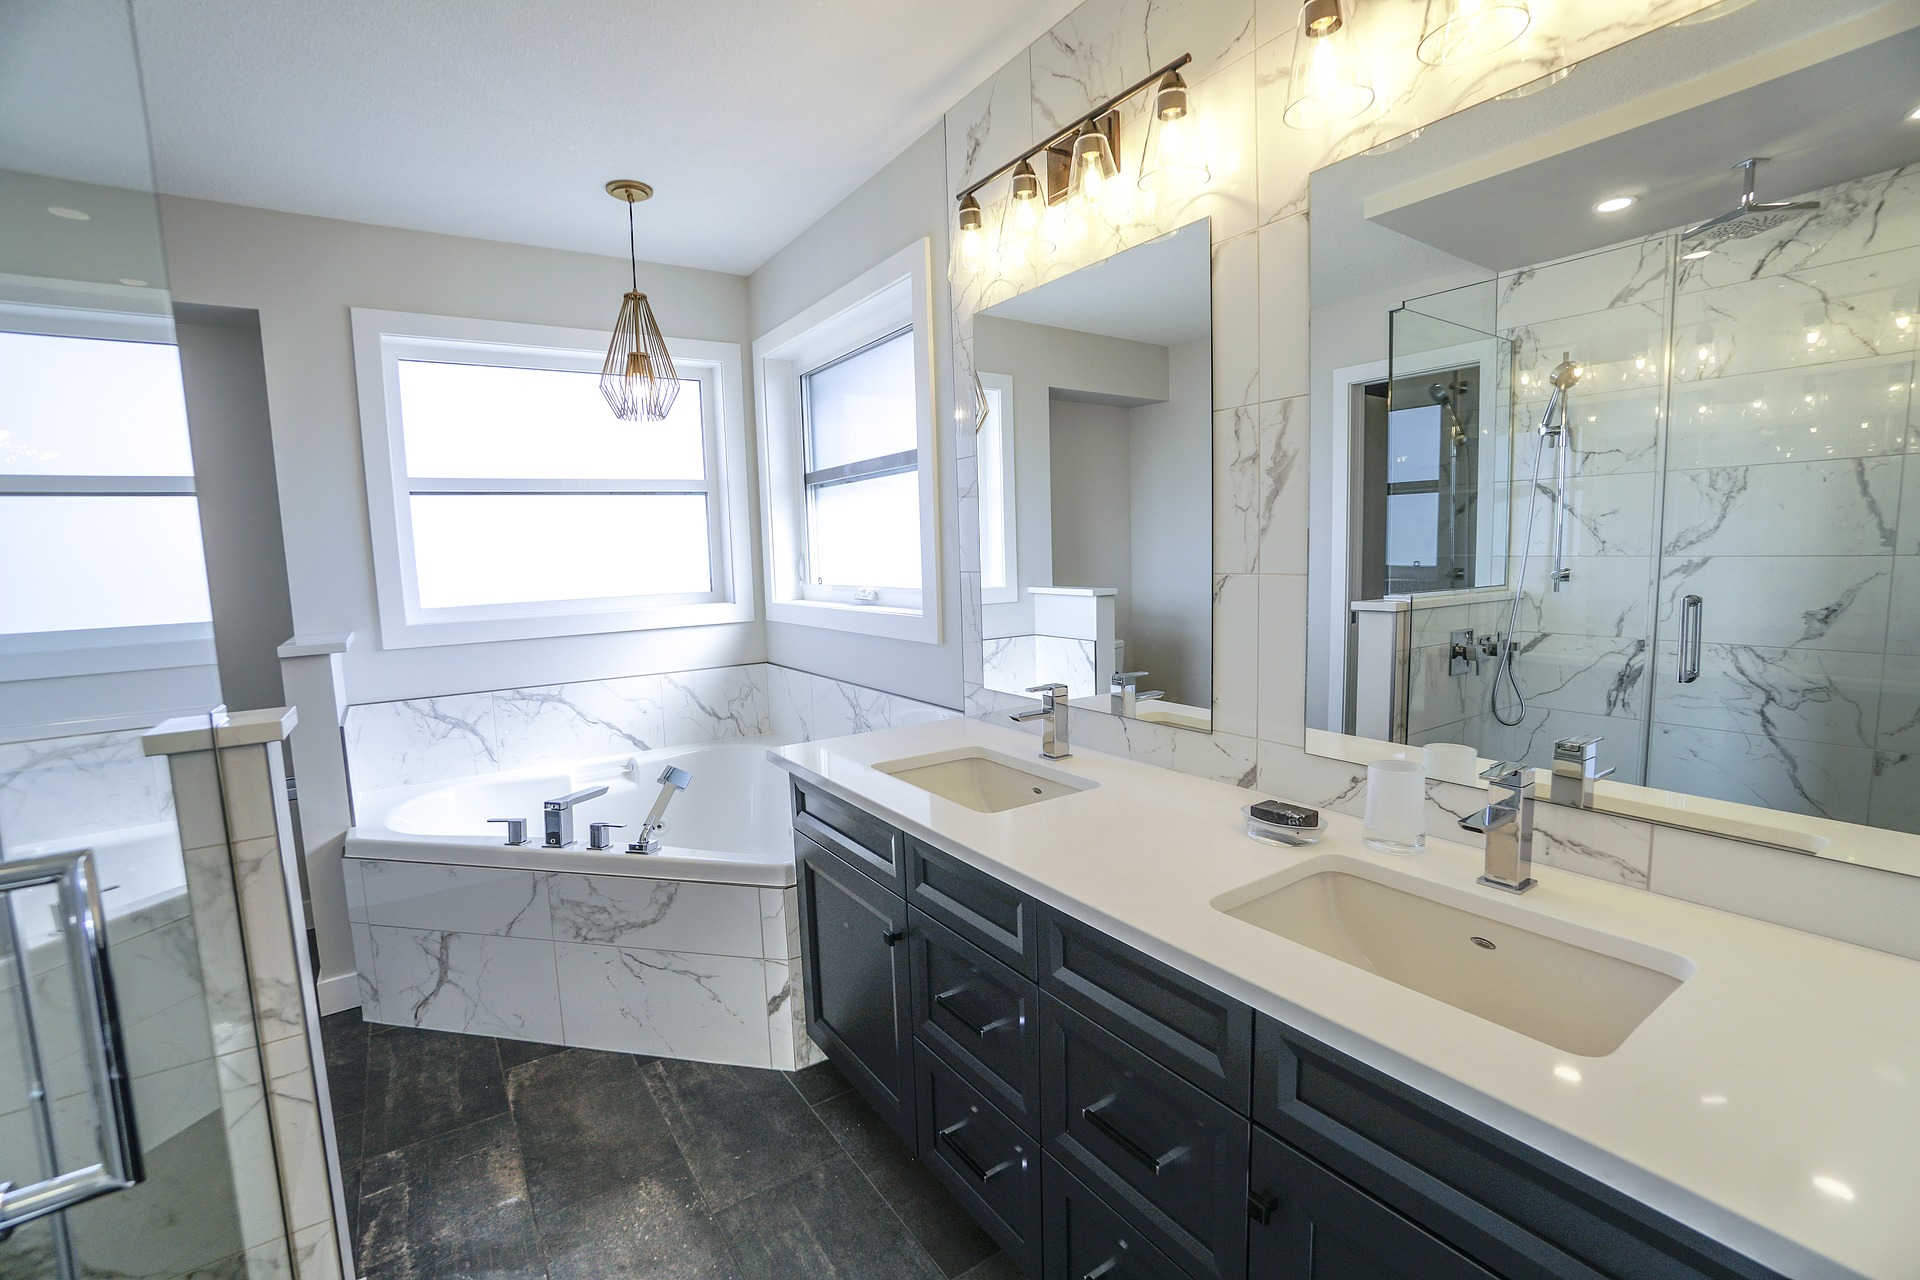 29 tips which can't be missed for a clean bathroom